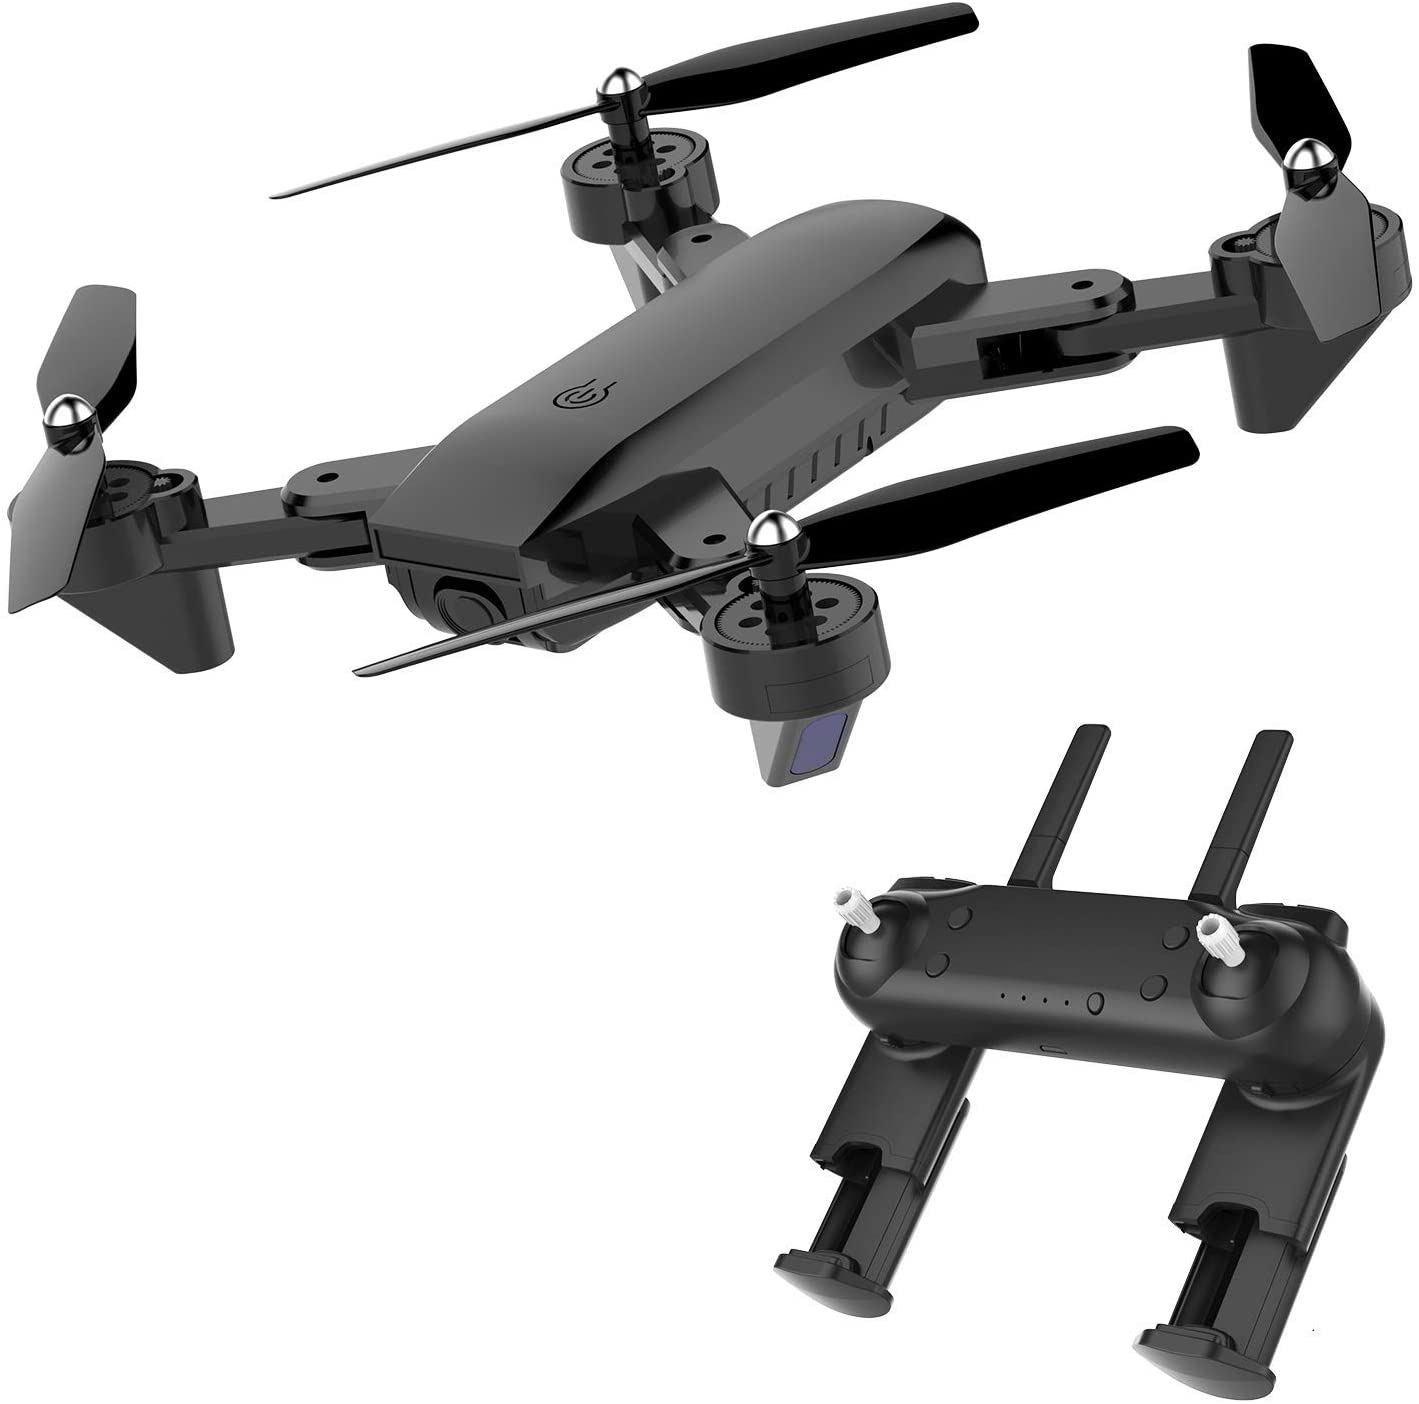 BABRIC Biff-2 GPS FPV Drone with 1080P HD Camera, Gesture Control RC Quadcopter for Beginners with Altitude Hold, Gravity Sensor, RTF One Key Take Off/Landing, Foldable Arms, Bonus Battery